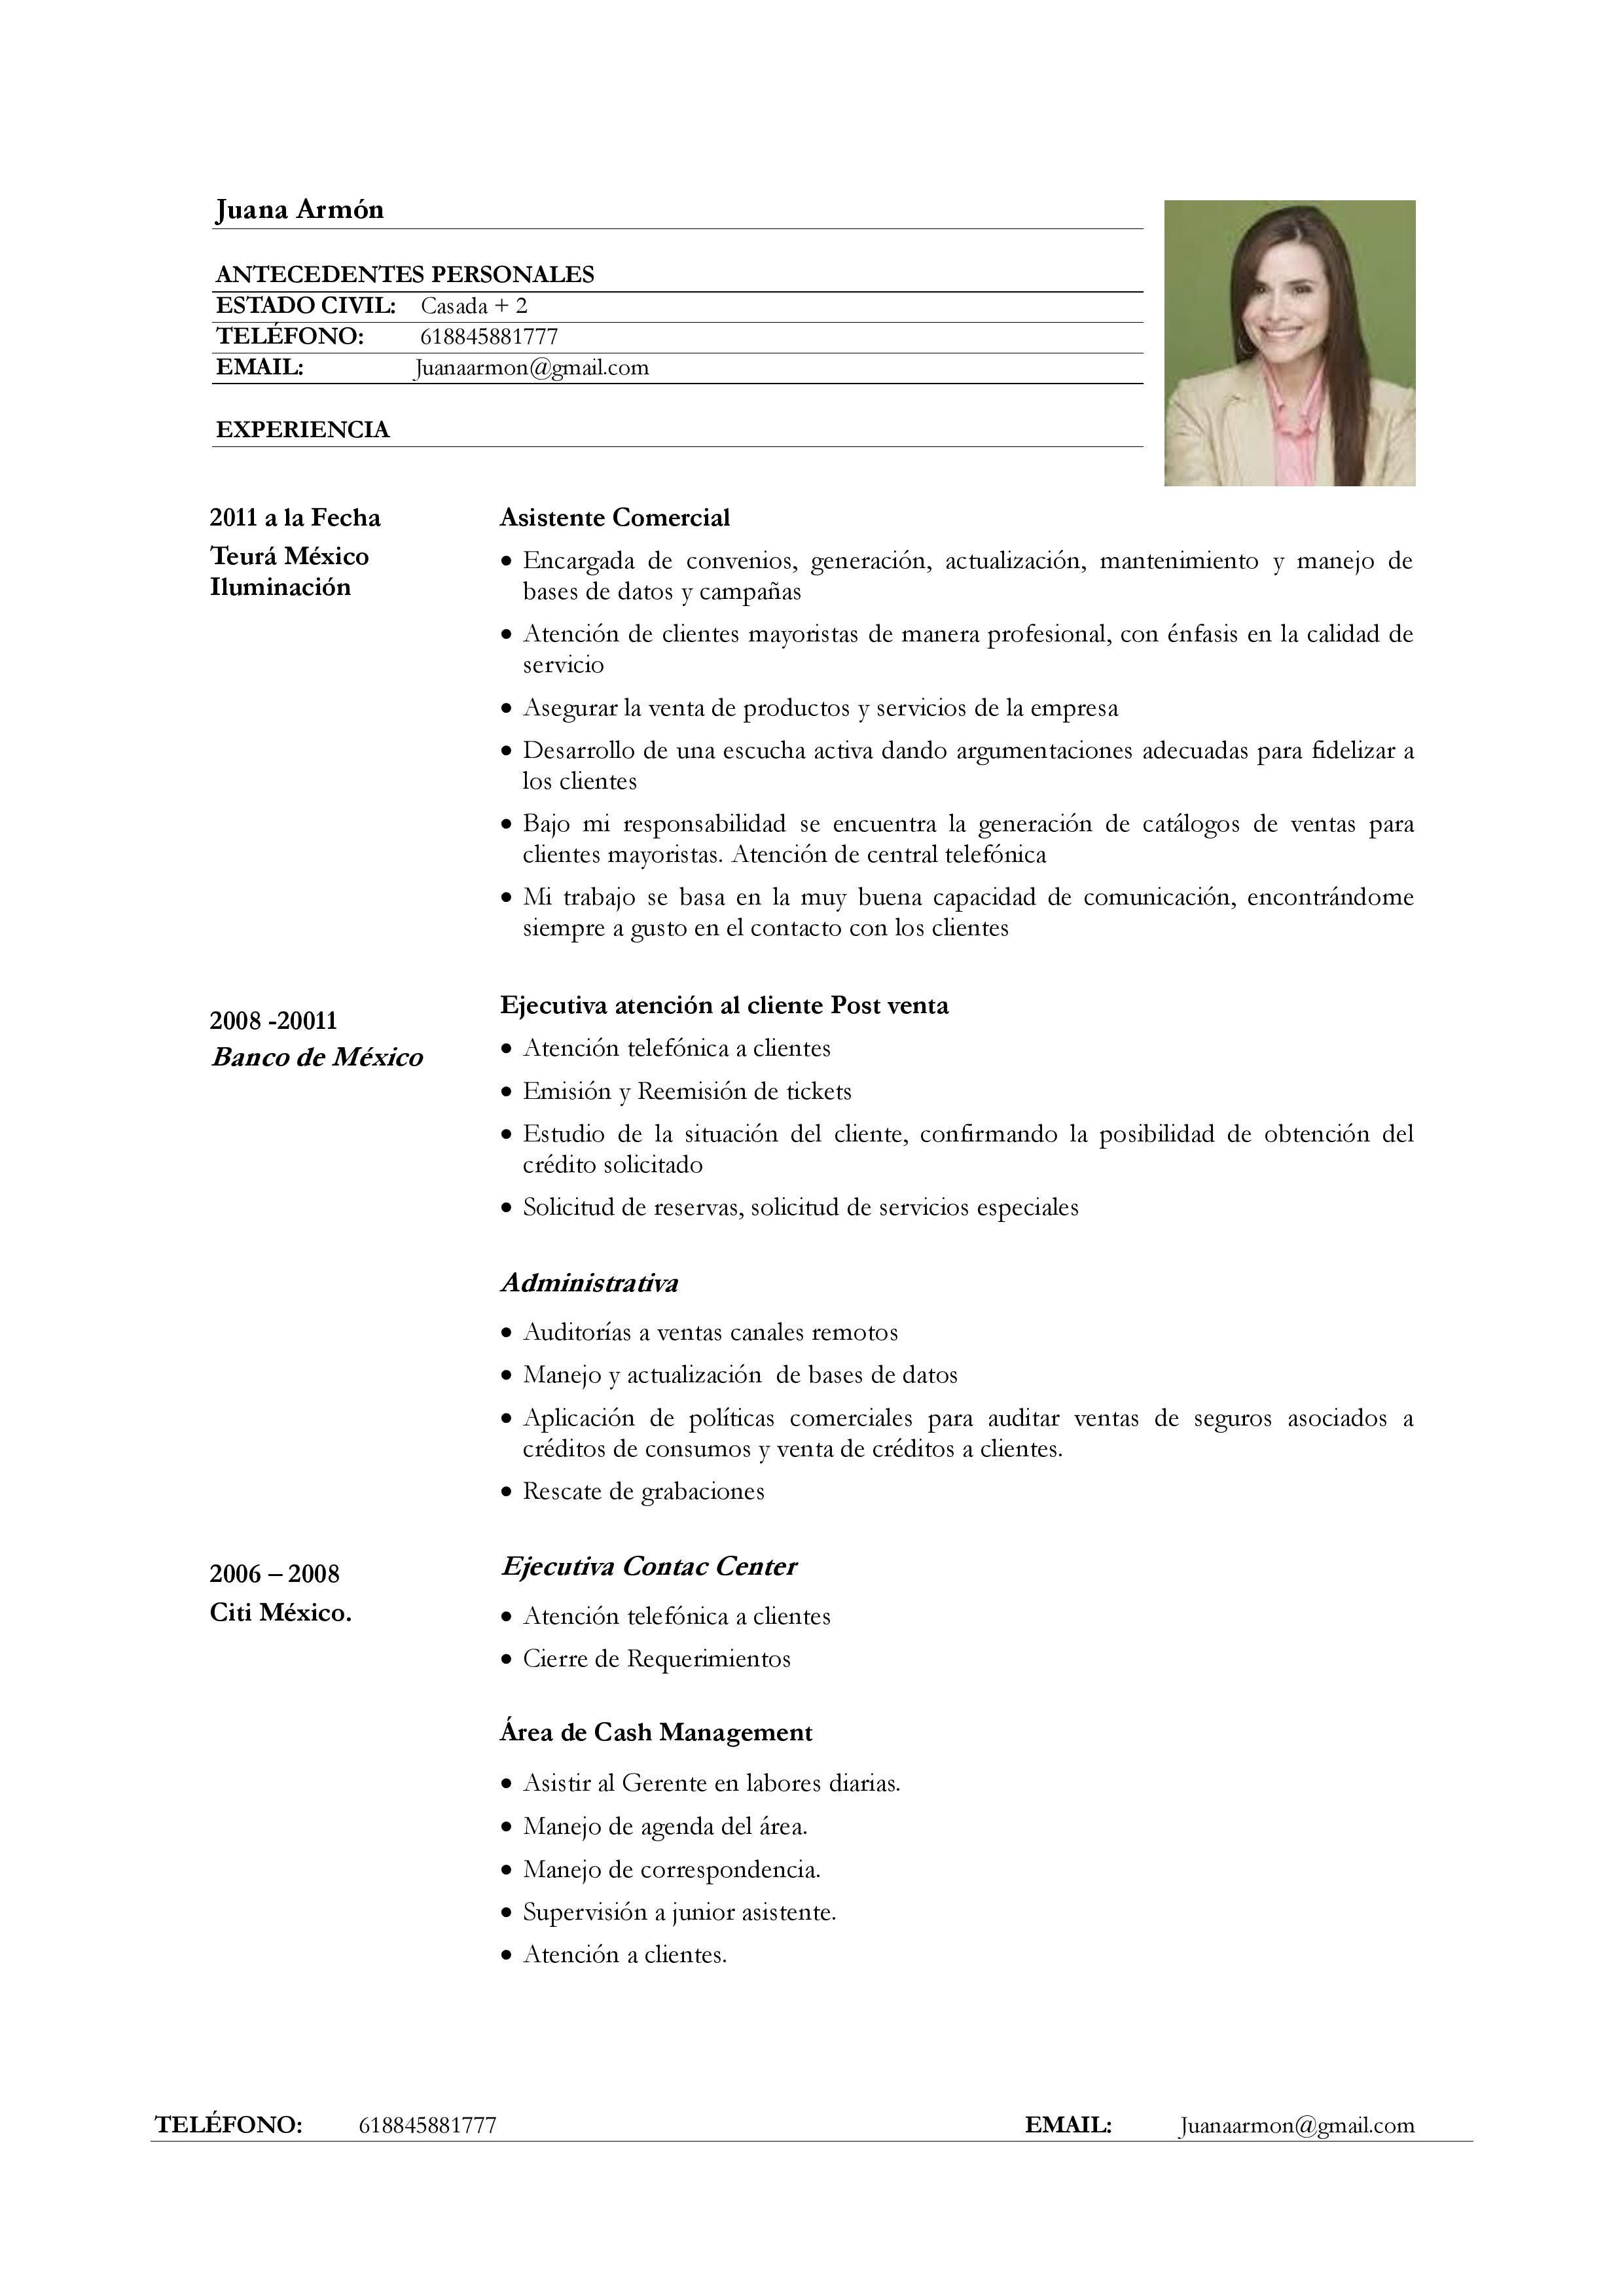 Ejemplo De Currículum Vitae Para Servicio De Atención Al. Resume Format Free Download Pdf File. Buyer Cover Letter With No Experience. Letter Of Resignation For Hostile Work Environment. Resume Job Goals. Curriculum Vitae Modello Word Gratis. Cover Letter Examples Kennel Assistant. Resume Building For Nurses. Curriculum Vitae Formato Linkedin